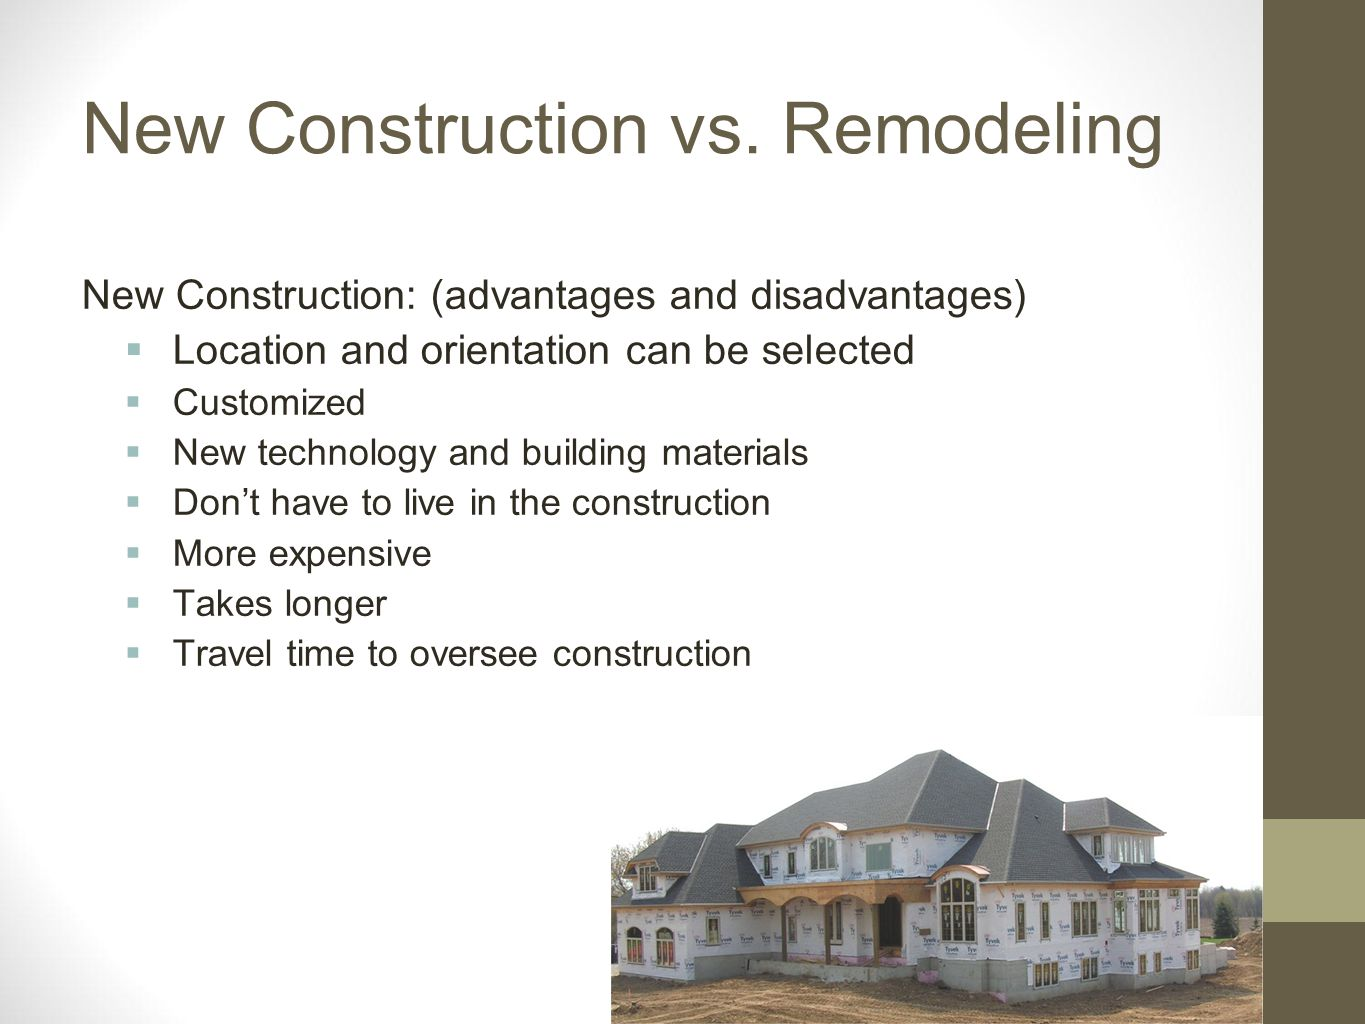 New Construction vs. Remodeling